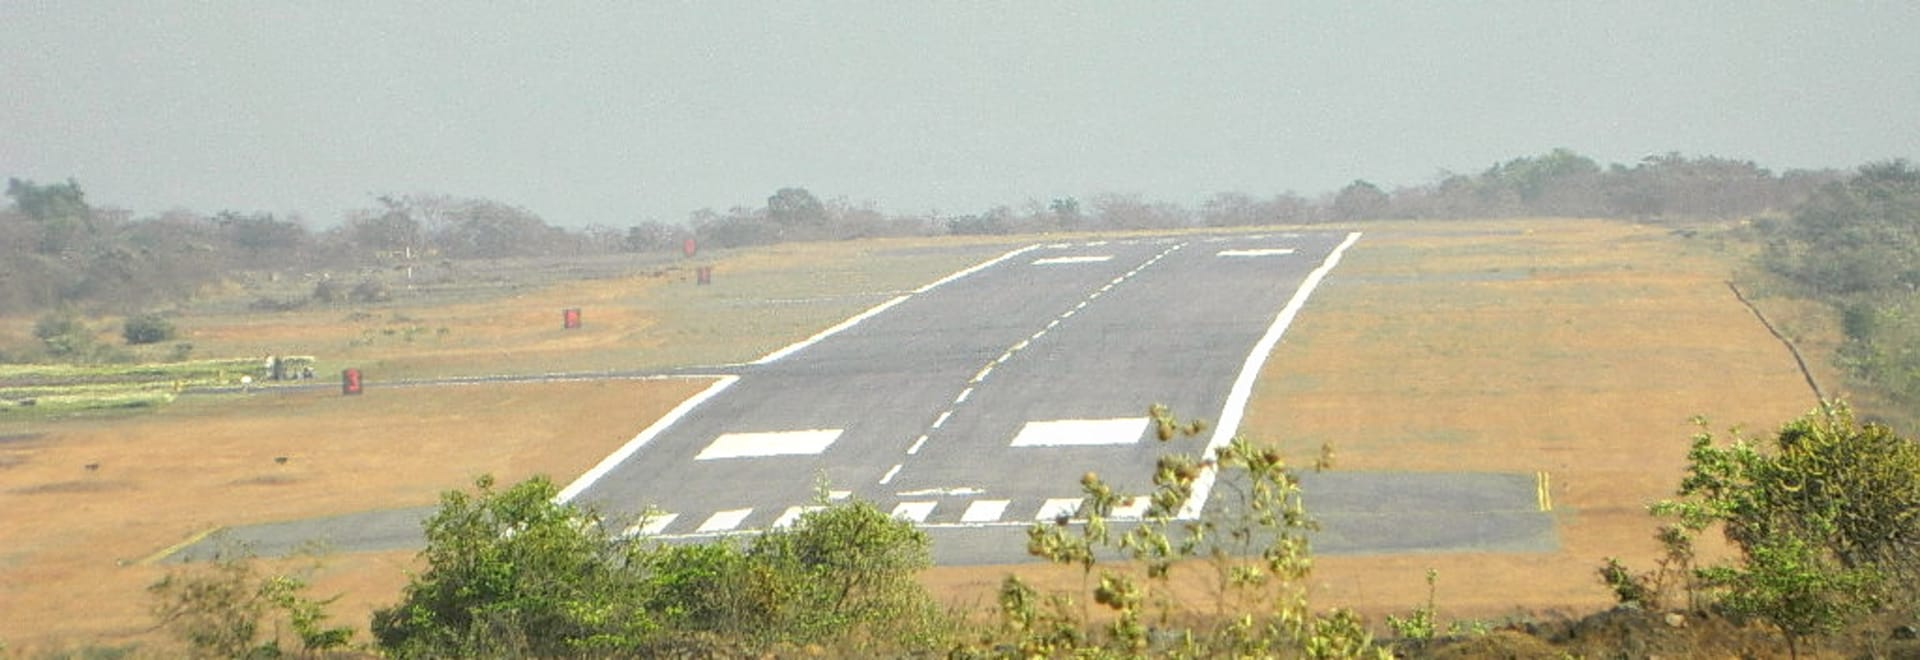 1492244168_amby_valley_airstrip.jpg